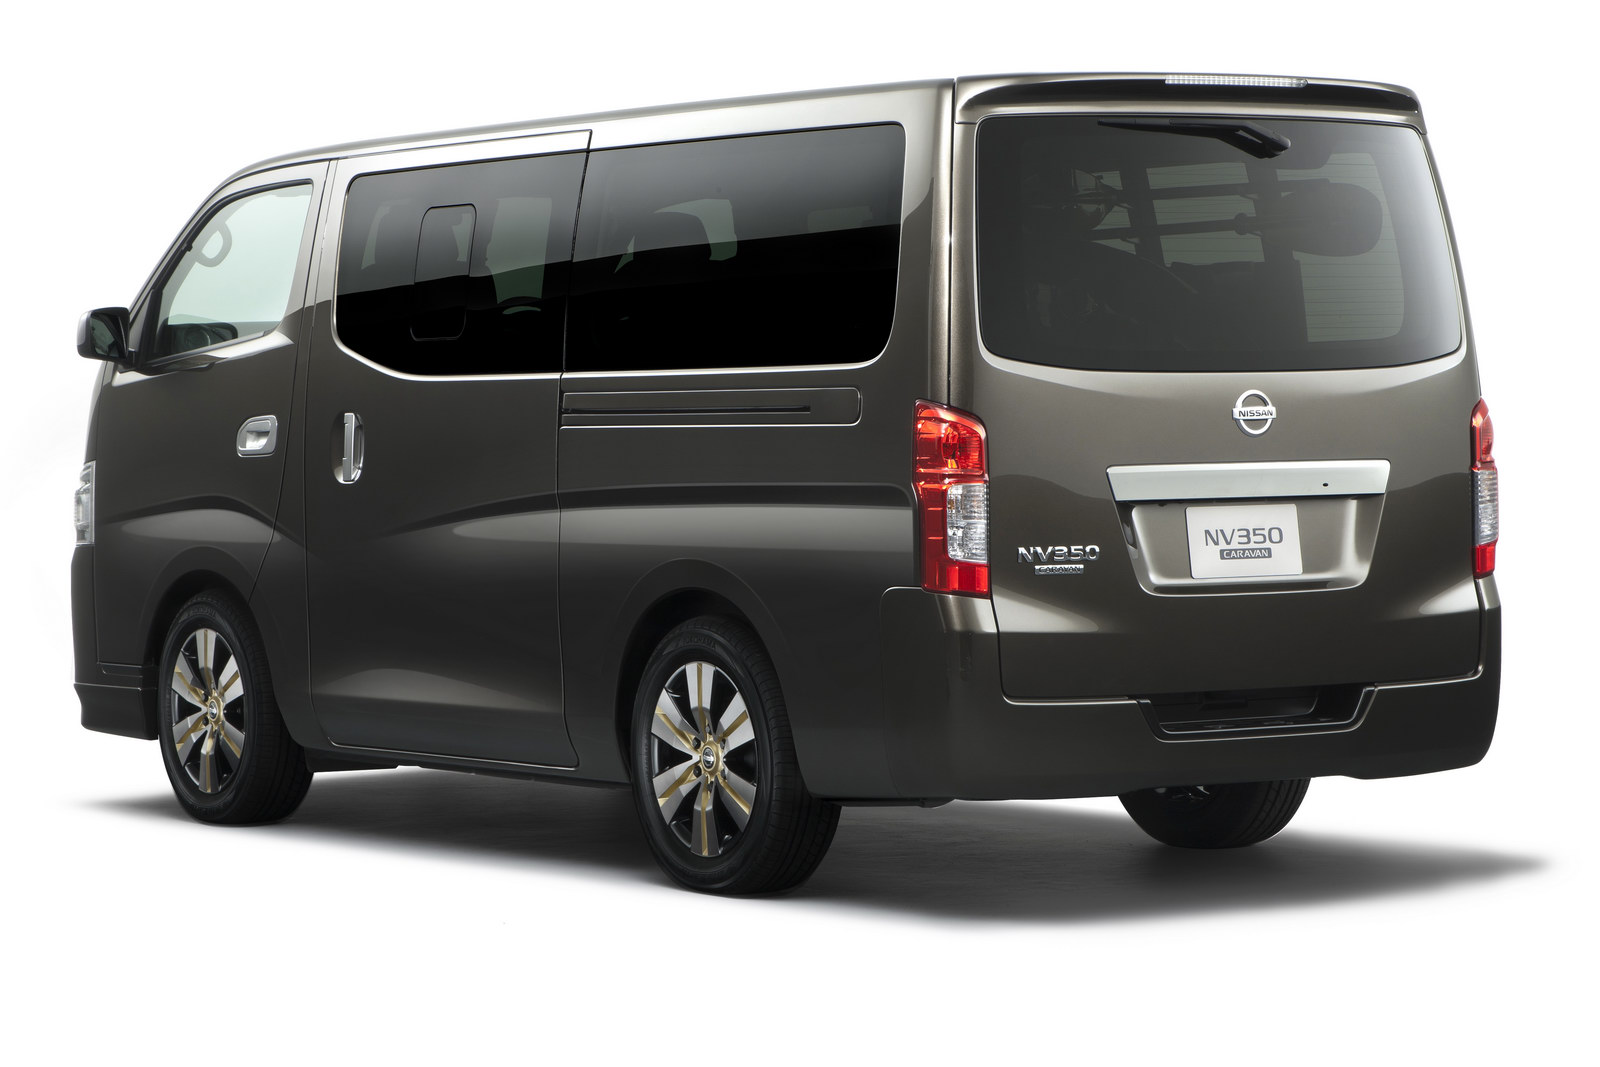 Nissan NV350 Caravan 2012 - now Minivan #5